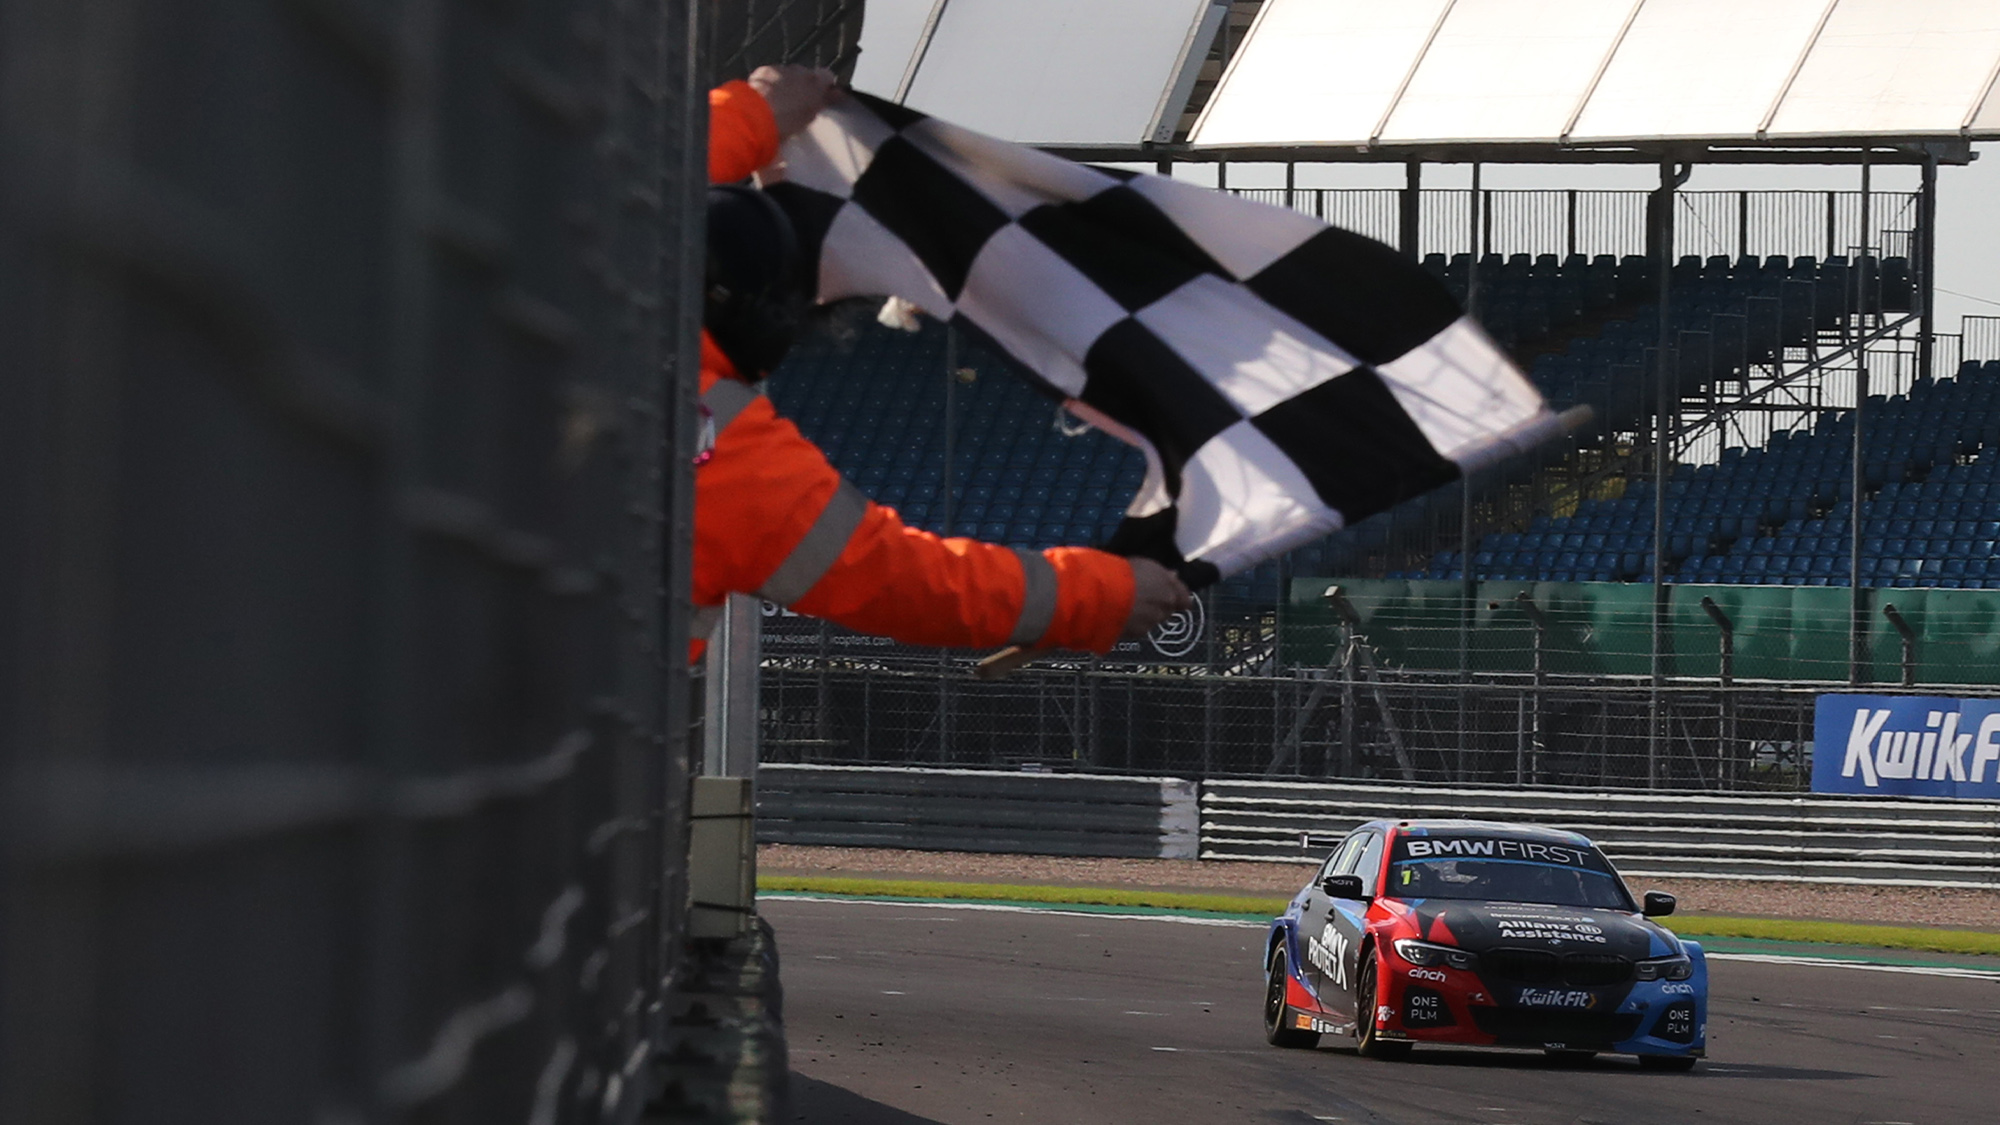 Colin Turkington takes the chequered flag at Silverstone in the 2020 BTCC meeting